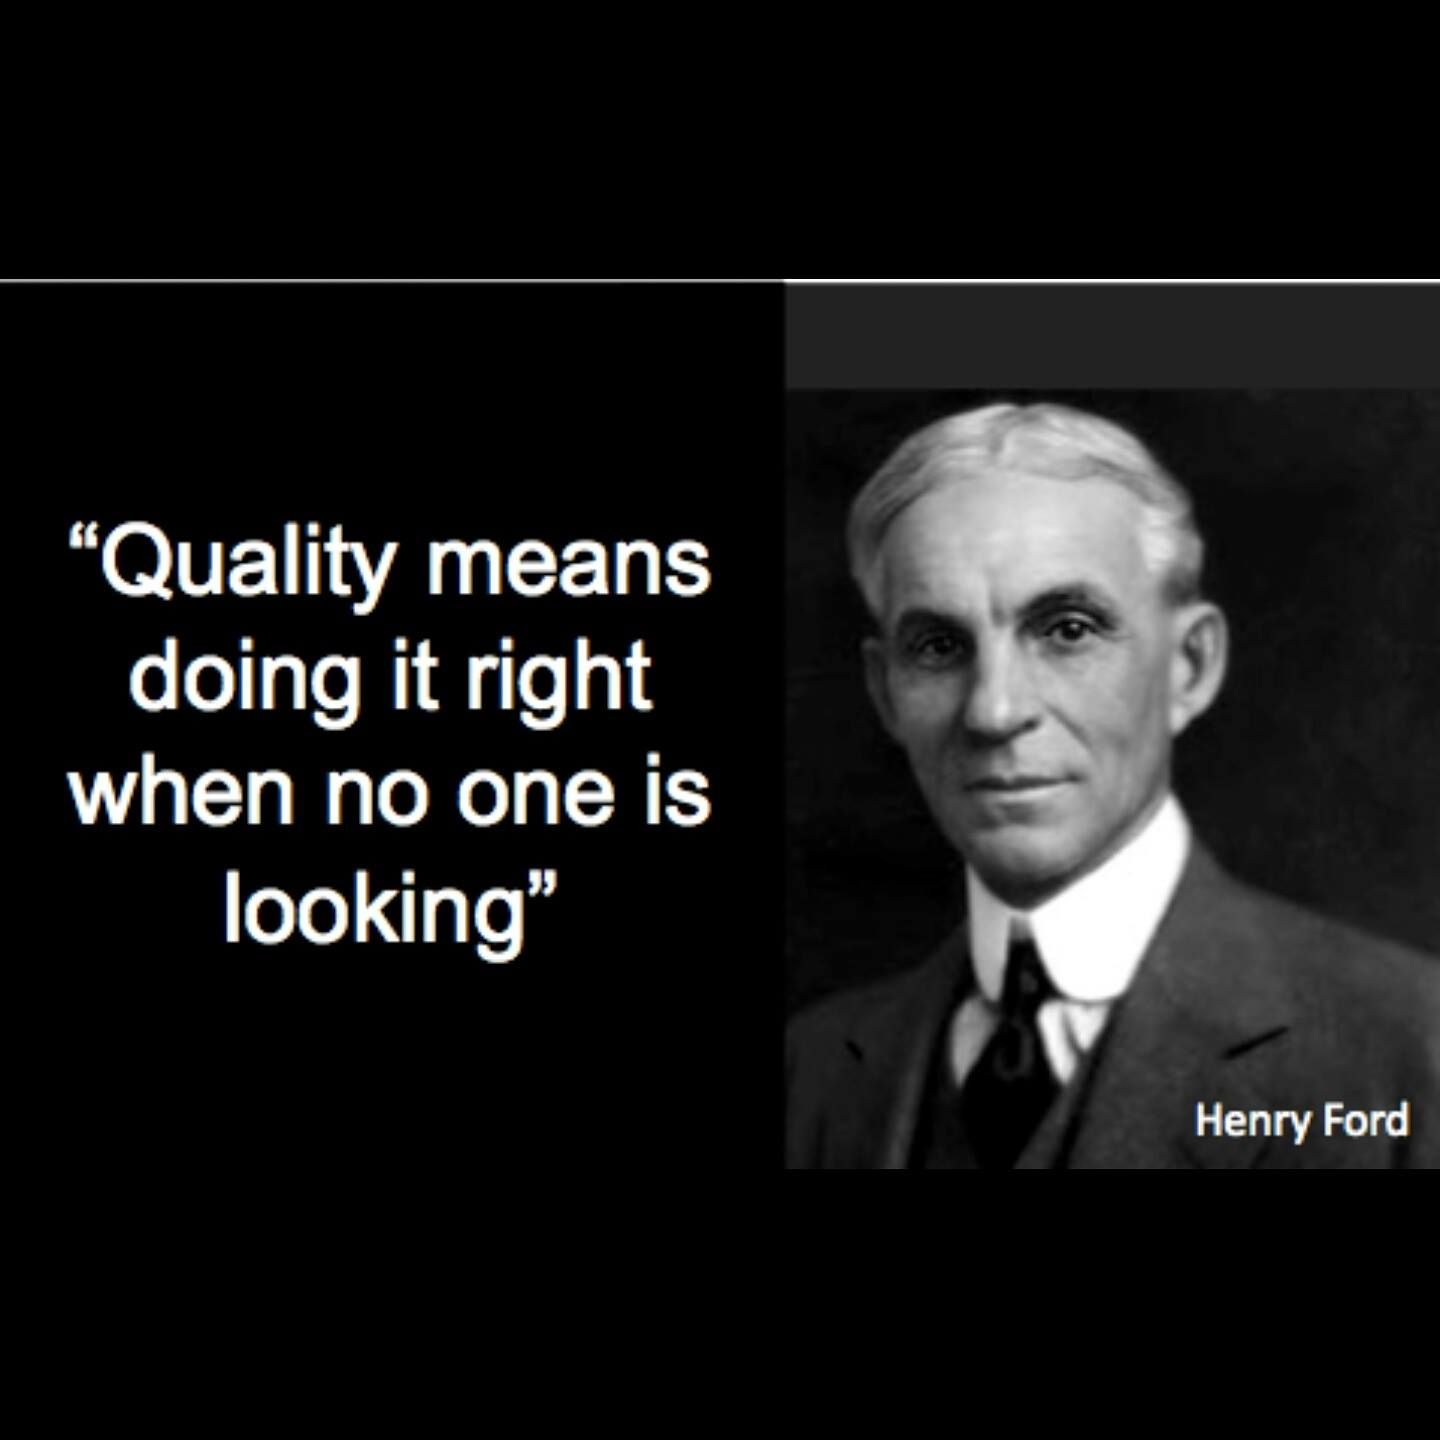 Design Technology Magazine Design Trends Gadgets Quotes By Famous People Famous Words Henry Ford